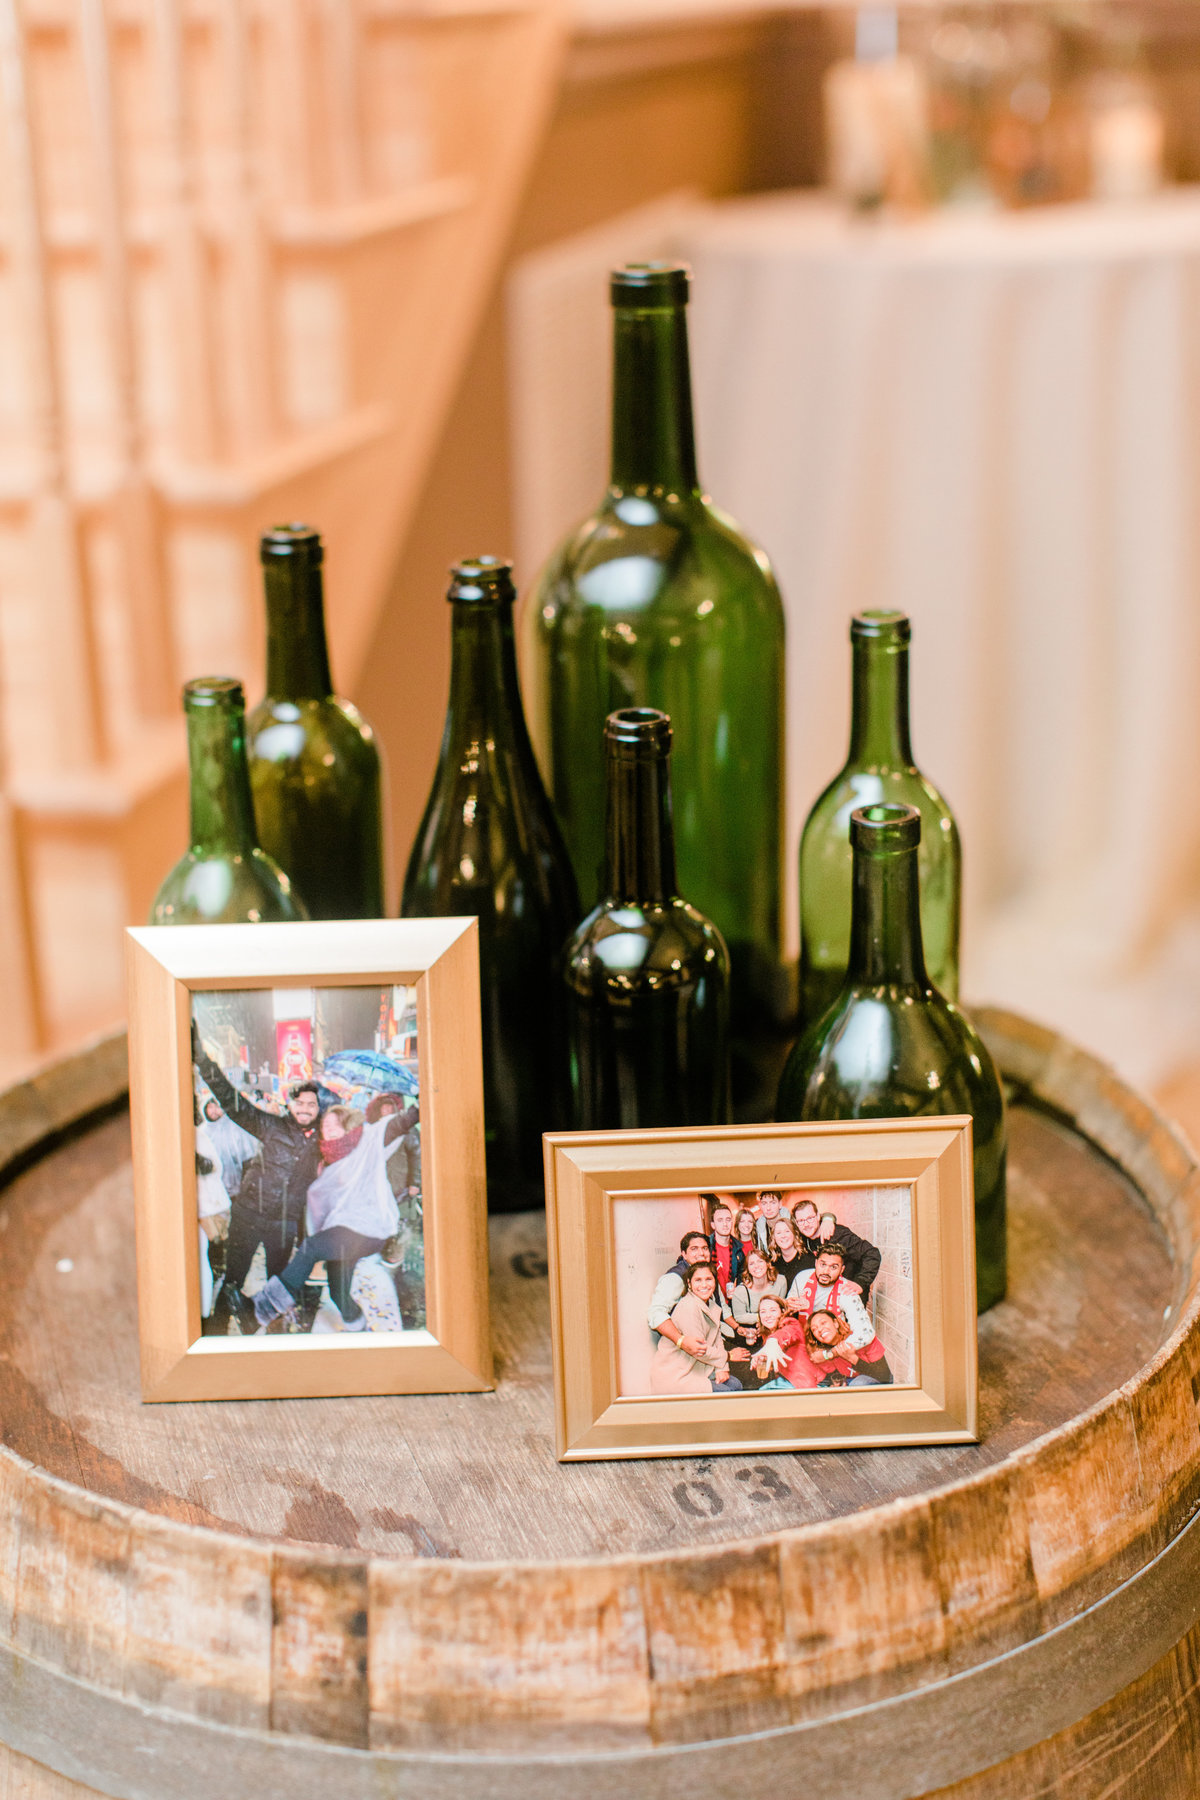 Williamsburg_Winery_Fall_Wedding_Virginia_DC_Photographer_Angelika_Johns_Photography-0125